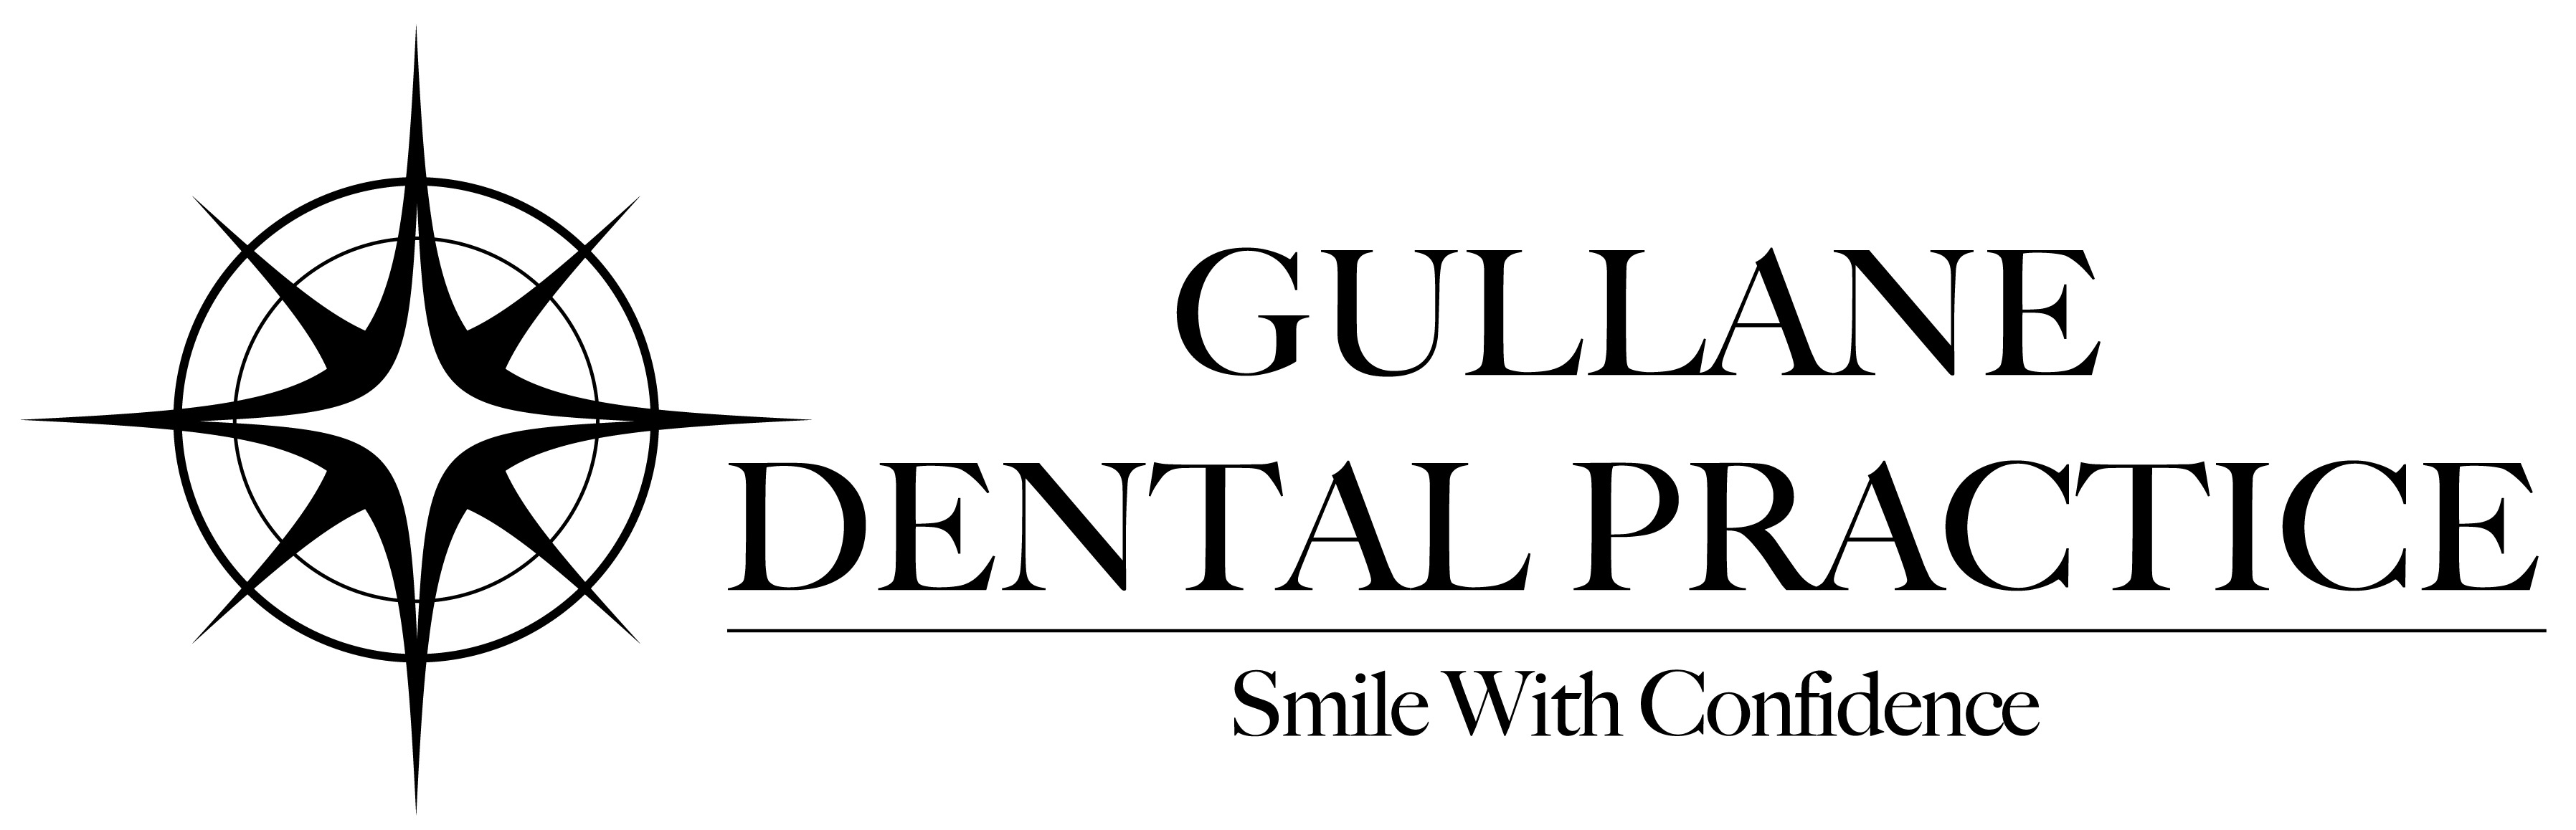 Gullane Dental Practice